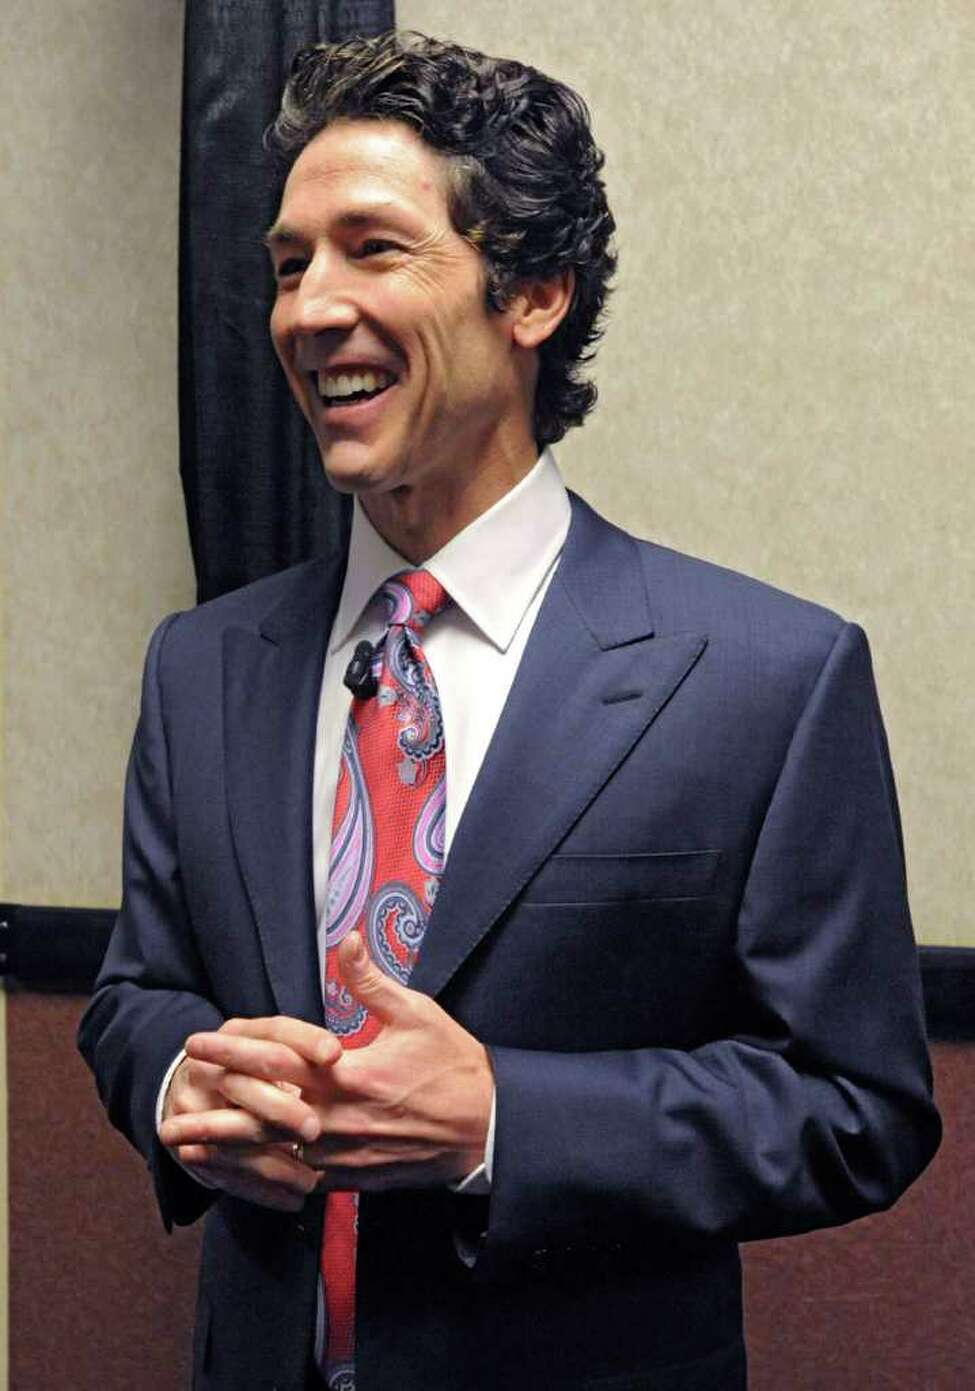 Joel Osteen talks to a reporter before he preaches at theTimes Union Center March 16, 2012 in Albany, N.Y. Osteen is a televangelist and the senior pastor of Lakewood Church in Houston, Texas. (Lori Van Buren / Times Union)